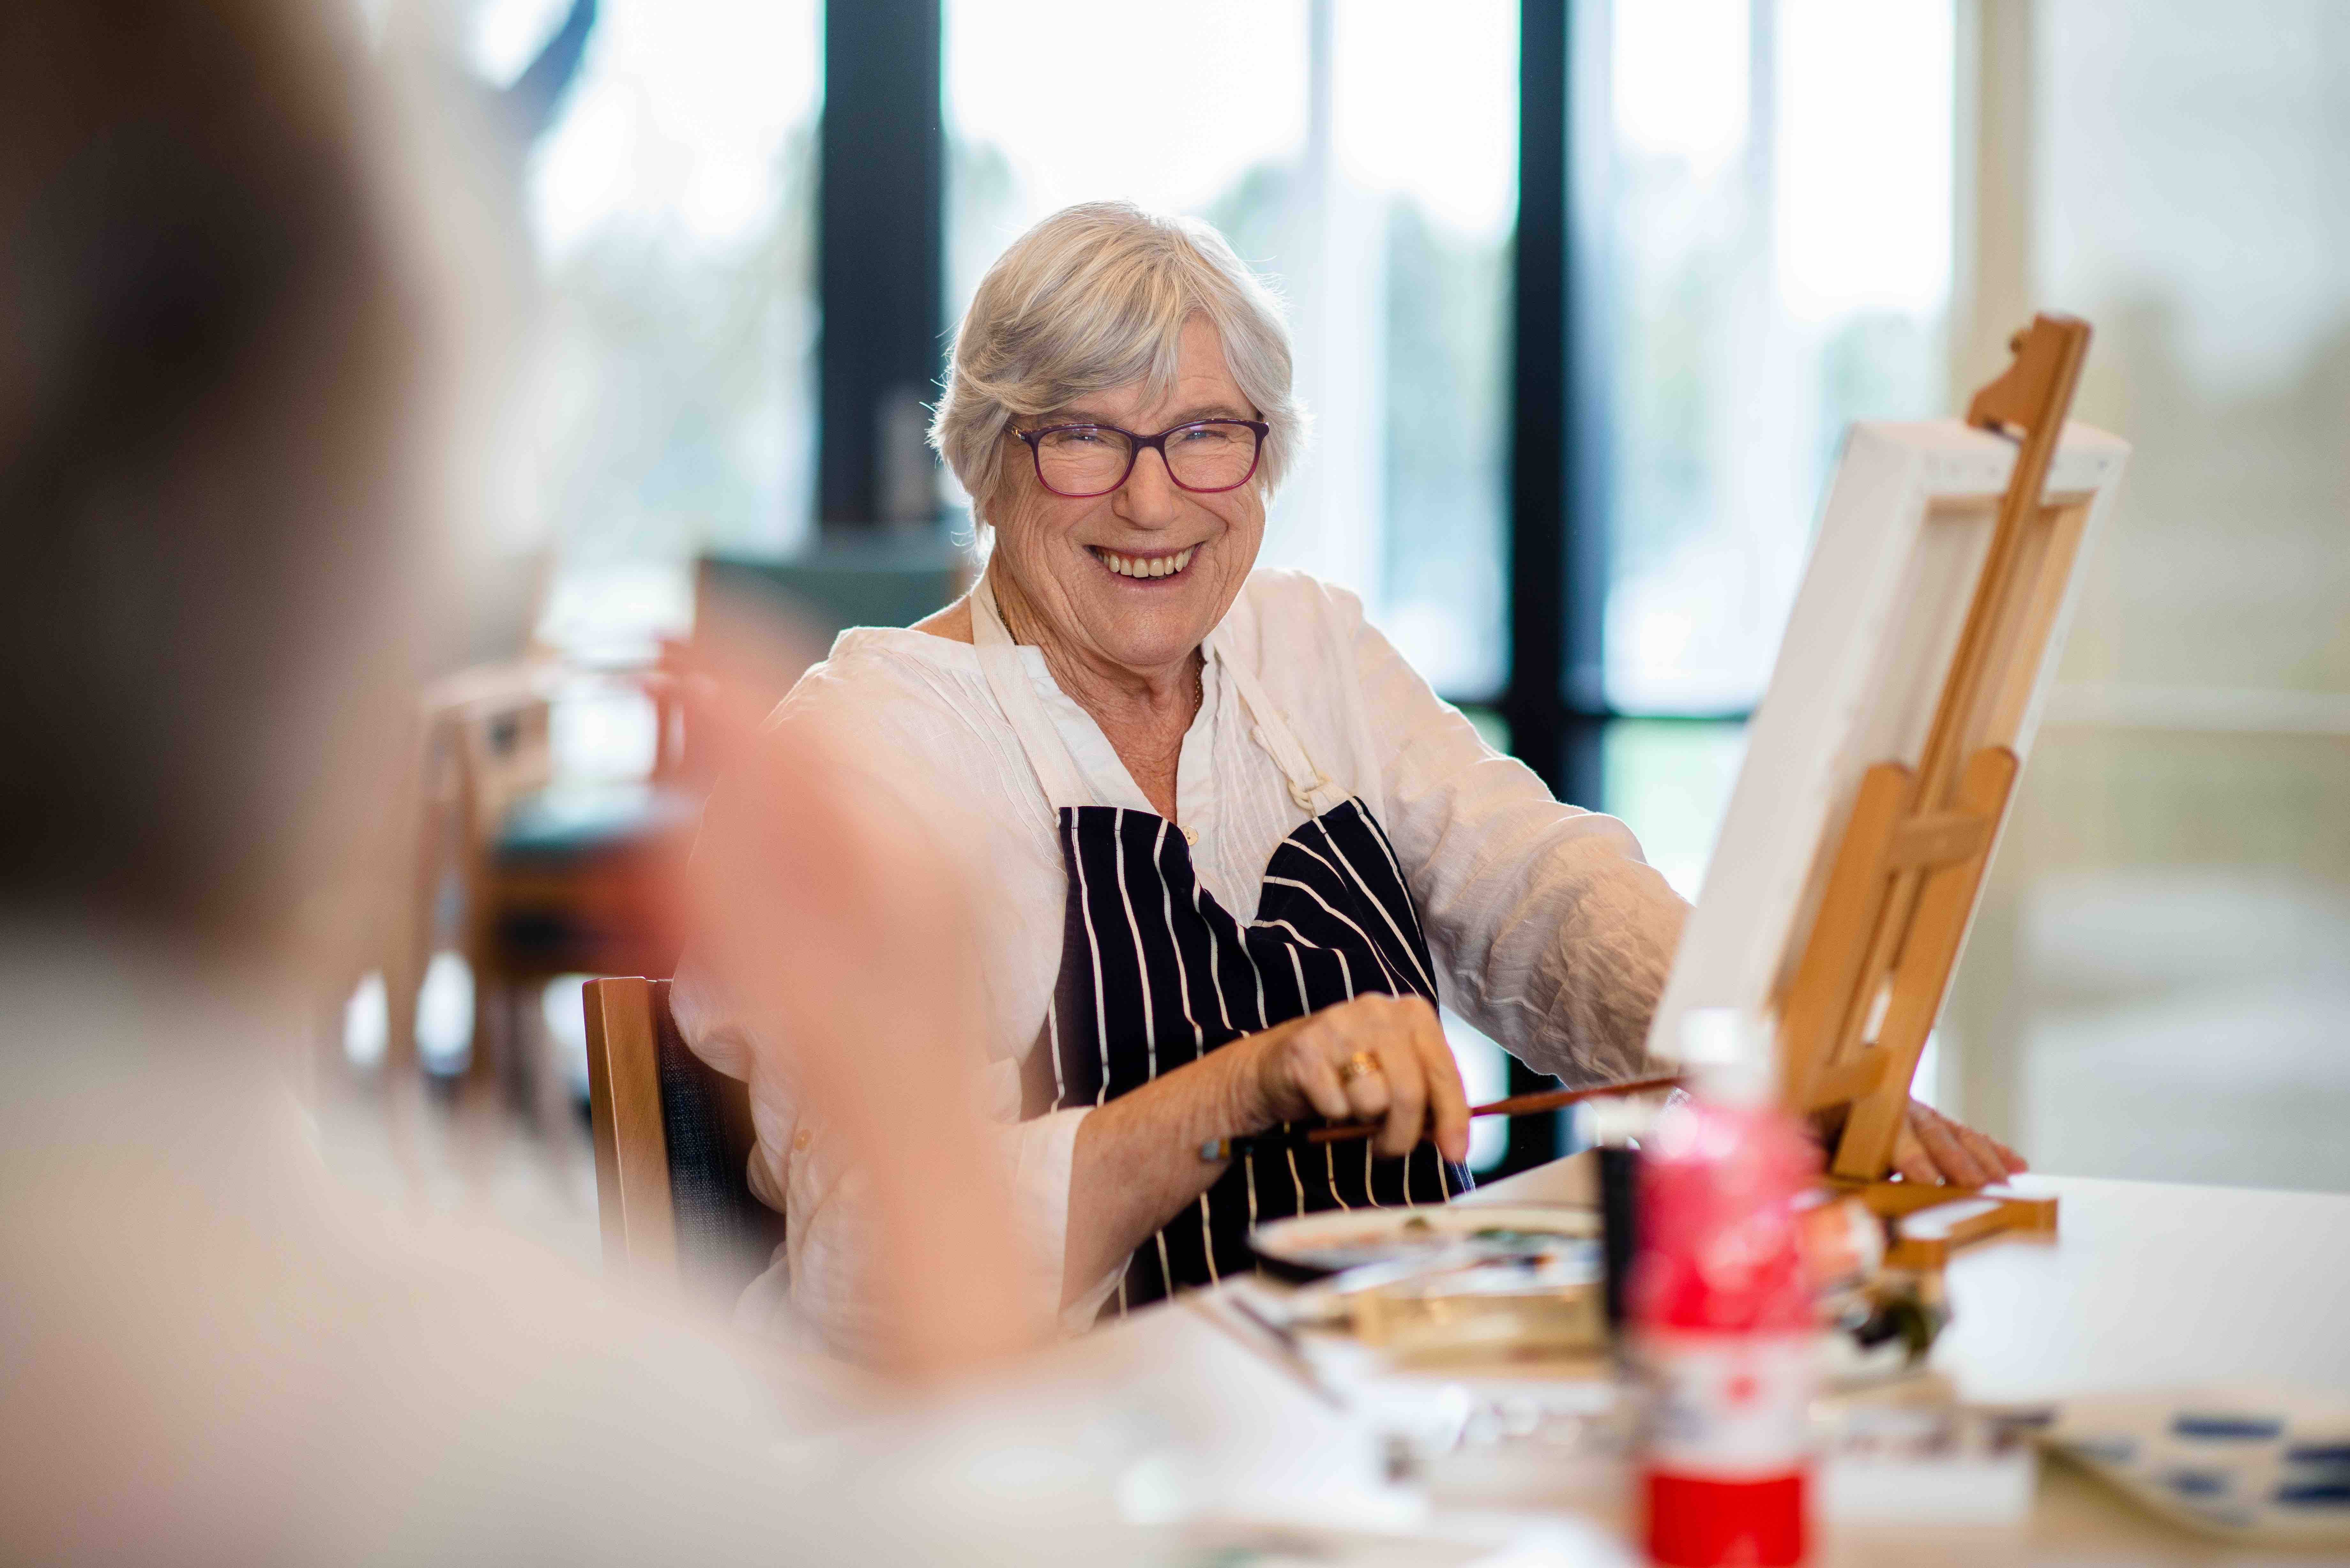 A smiling woman sits at a painting easel